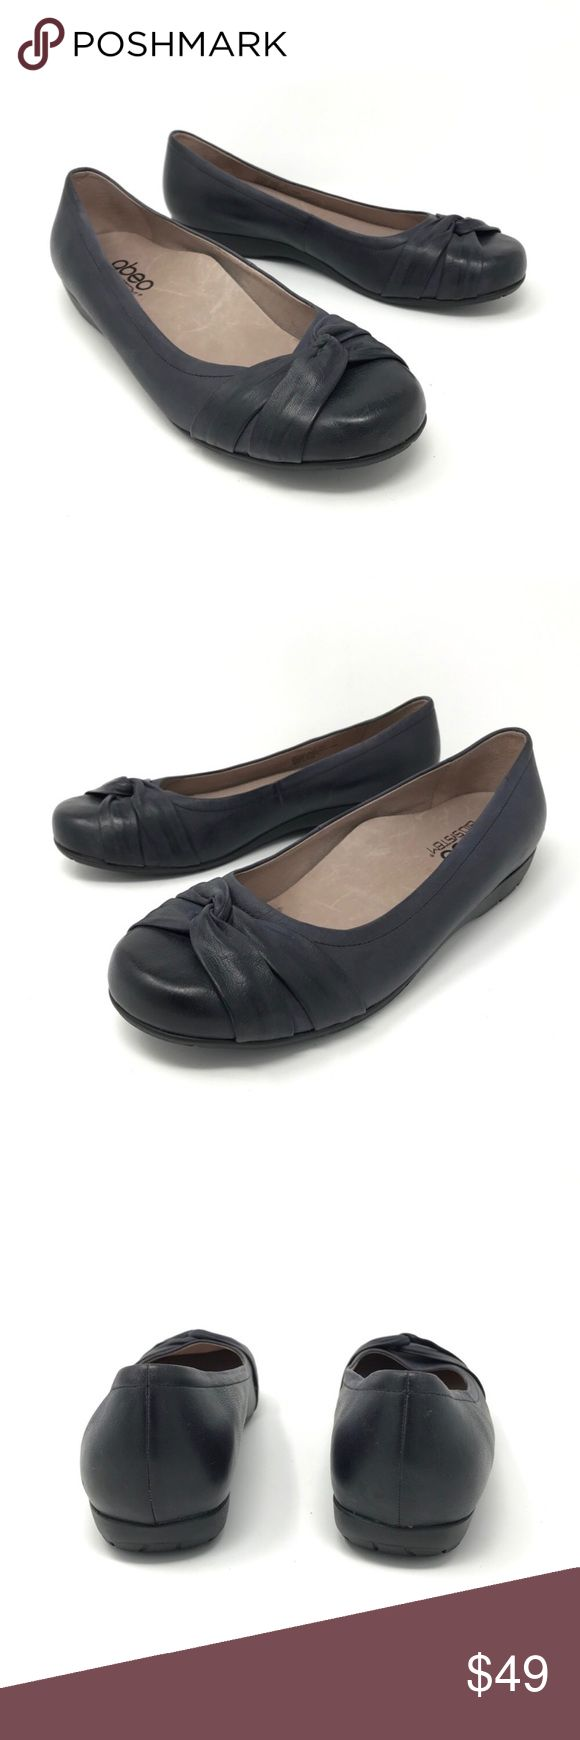 Abeo Bio.System Terrie Ballet Flat Blue Black 8.5N Abeo Bio.System Terrie Ballet Flats Blue Black Women's Sz 8.5 N Comfort Shoes  Size: 8.5 Narrow Color: Blue Black Style Name/Number: Terrie  In good preowned condition with no known flaws and light overall wear, some light scuffs or marks to leather, they are a blue black inky color. Abeo Shoes Flats & Loafers